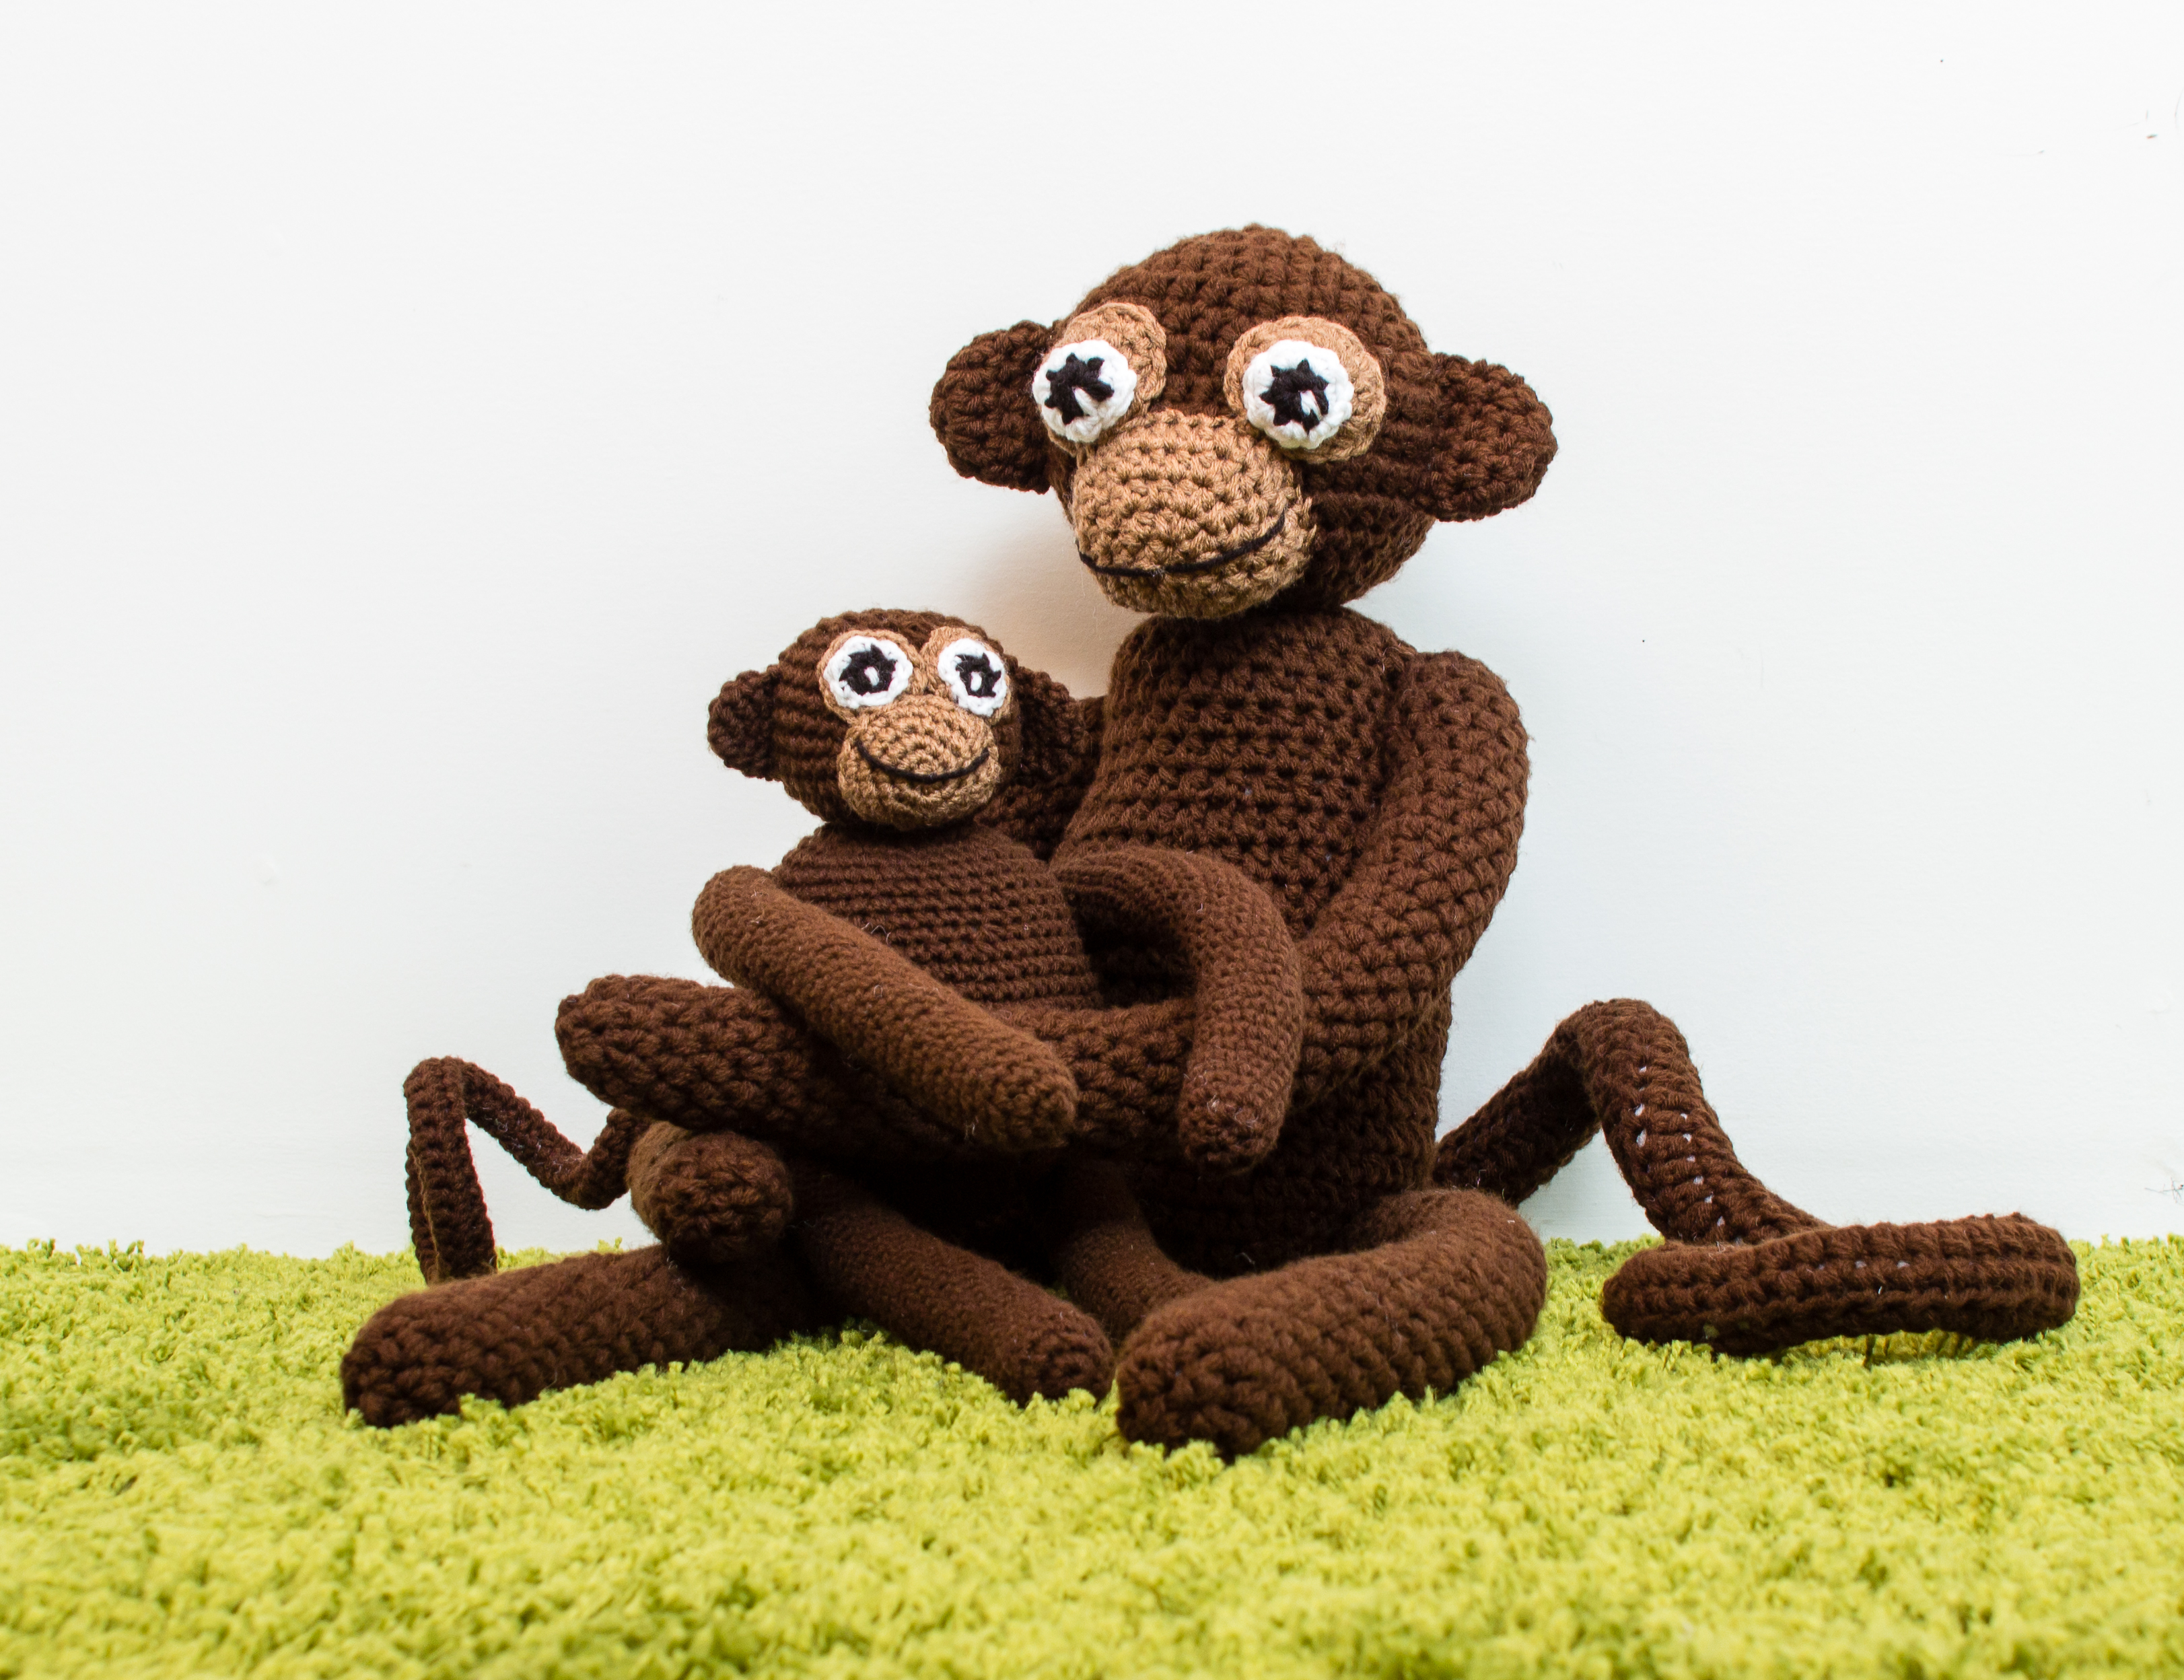 Amigurumi Monkey Patterns : Amigurumi monkey crochet pattern animal crochet cp